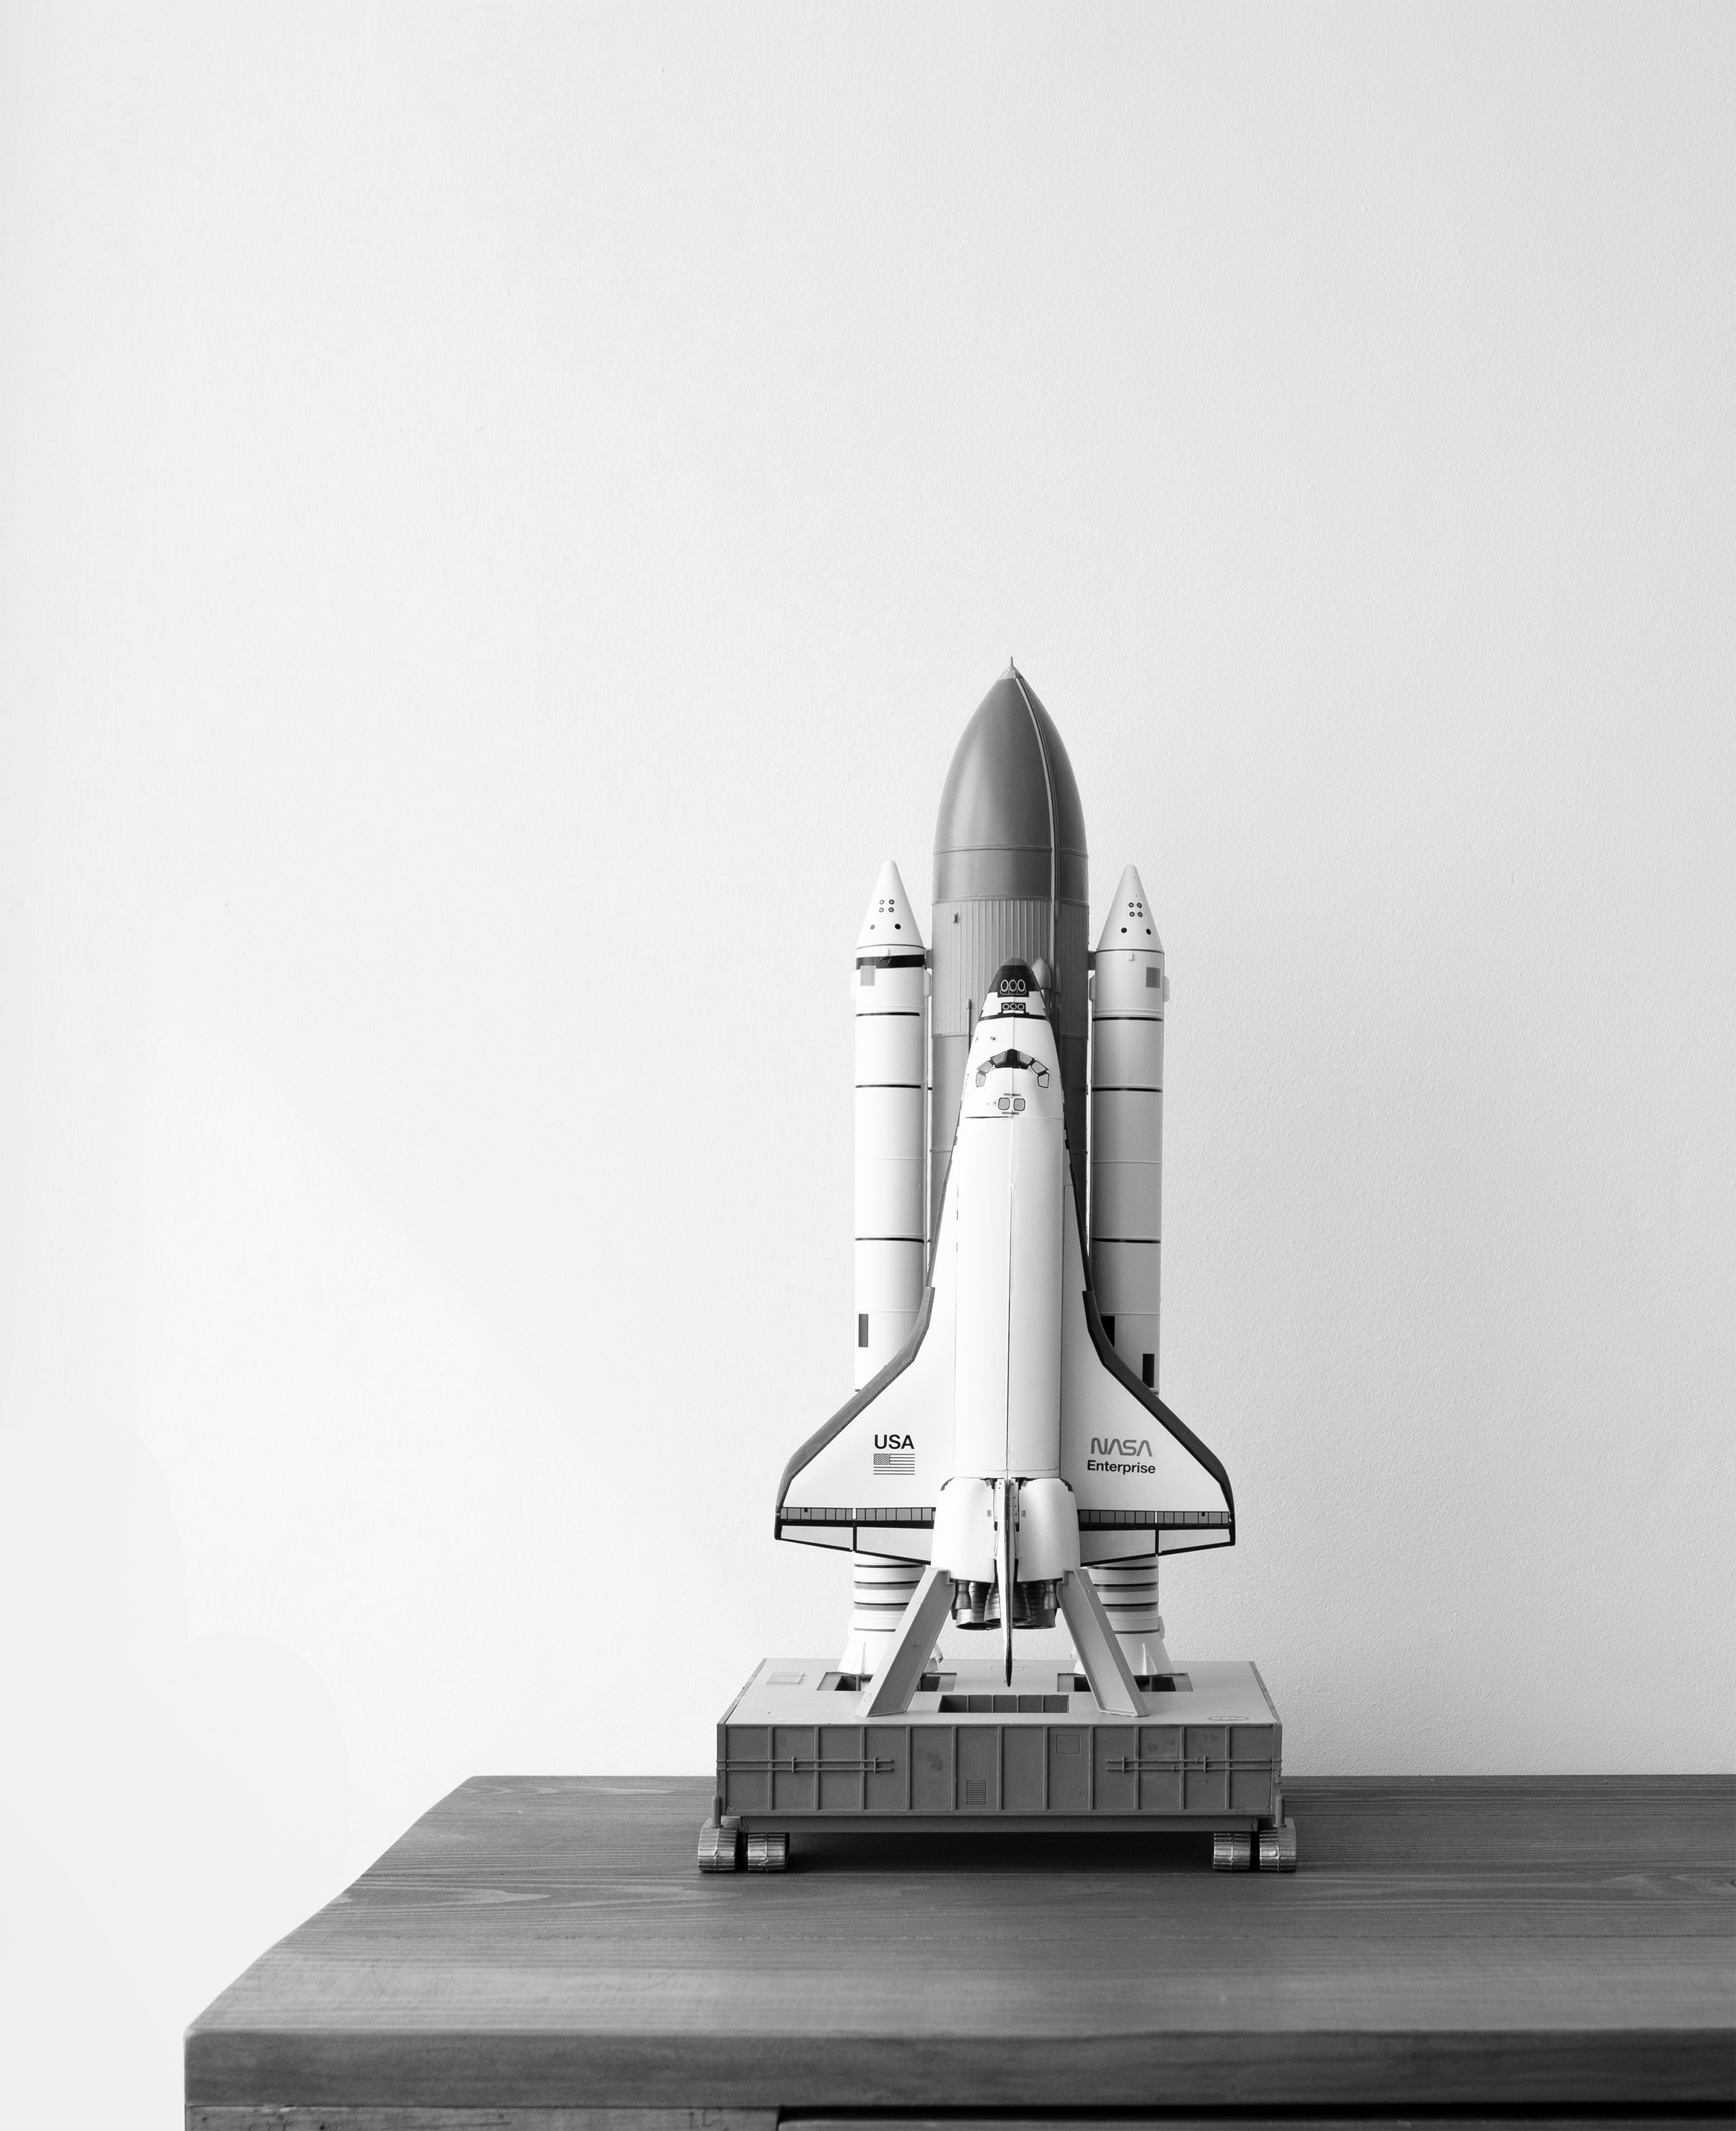 A toy space shuttle on a desk.